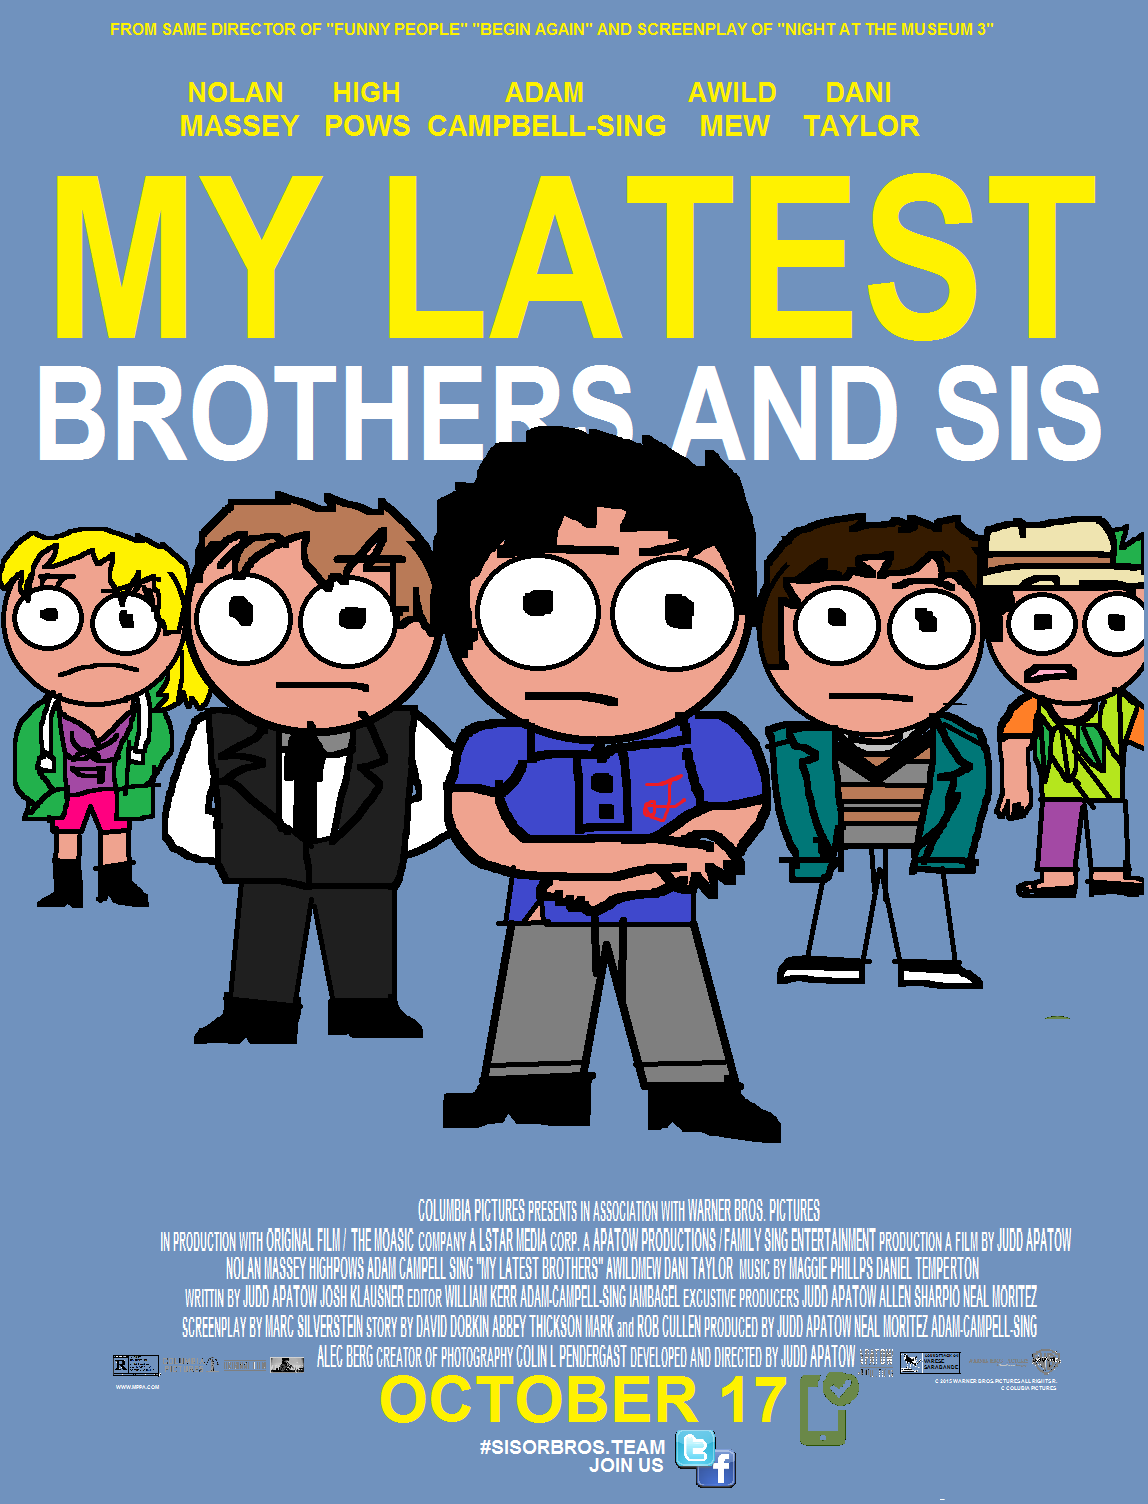 My Latest Brothers And Sis (2015 Film)